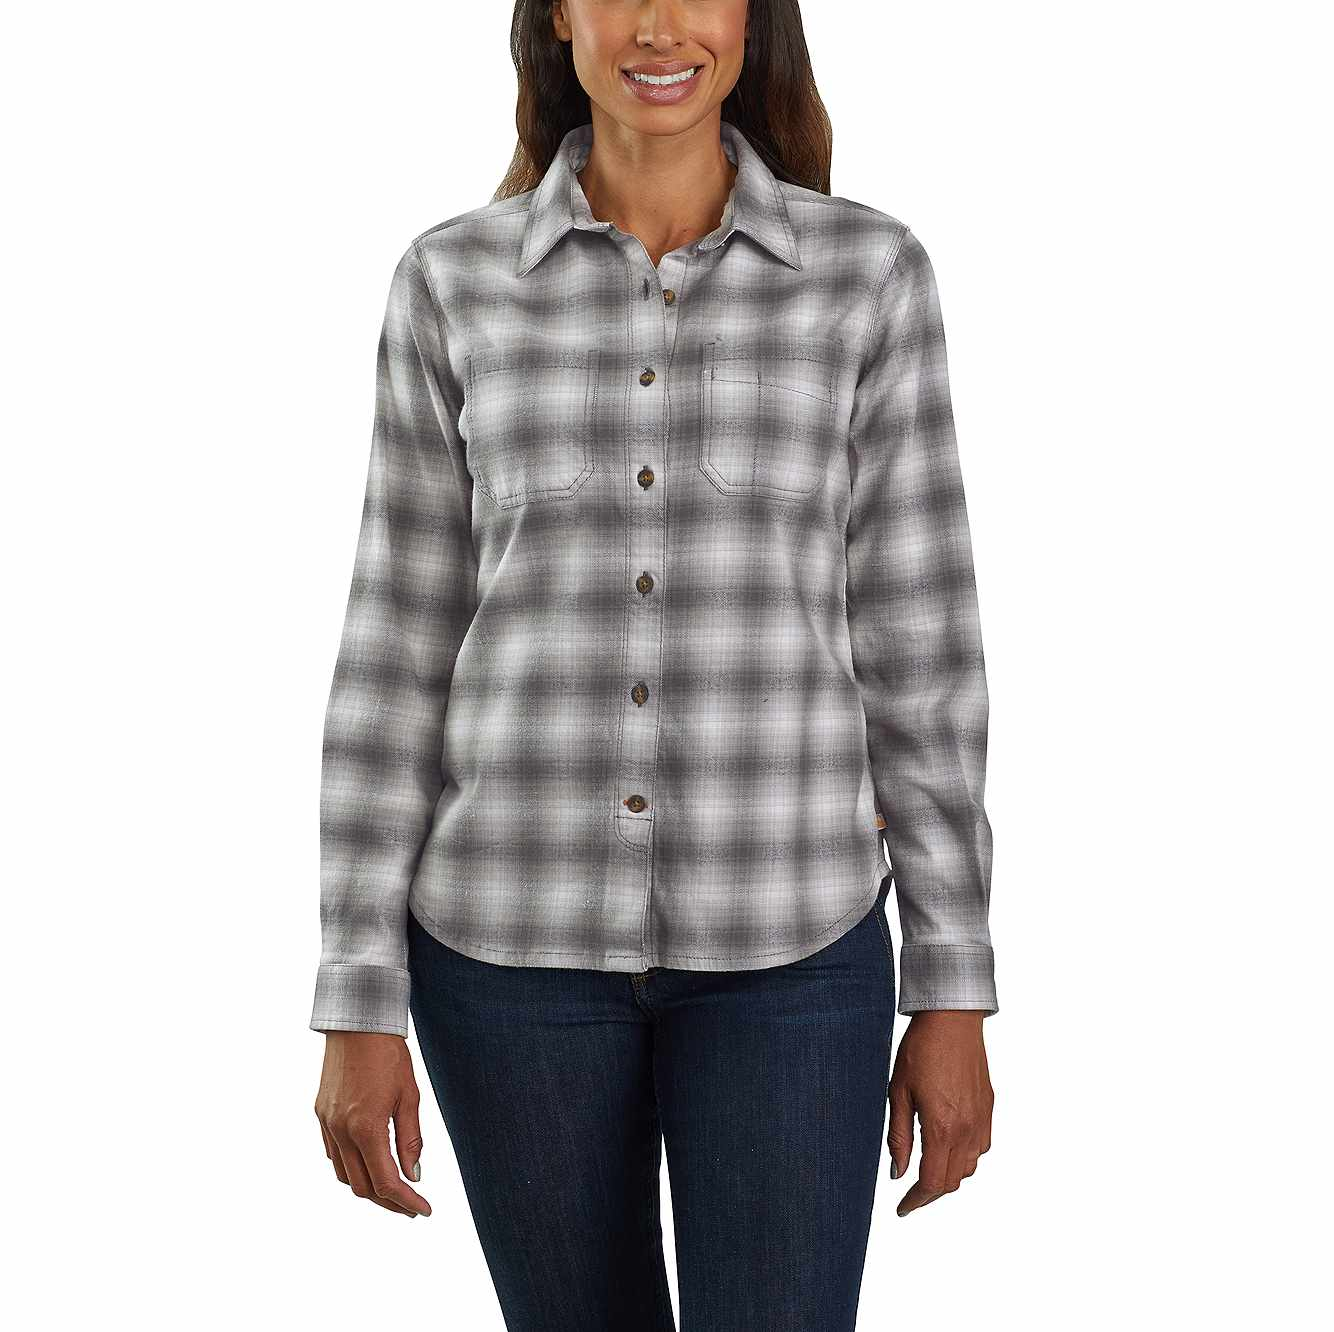 Picture of Rugged Flex® Hamilton Flannel Shirt in Charcoal